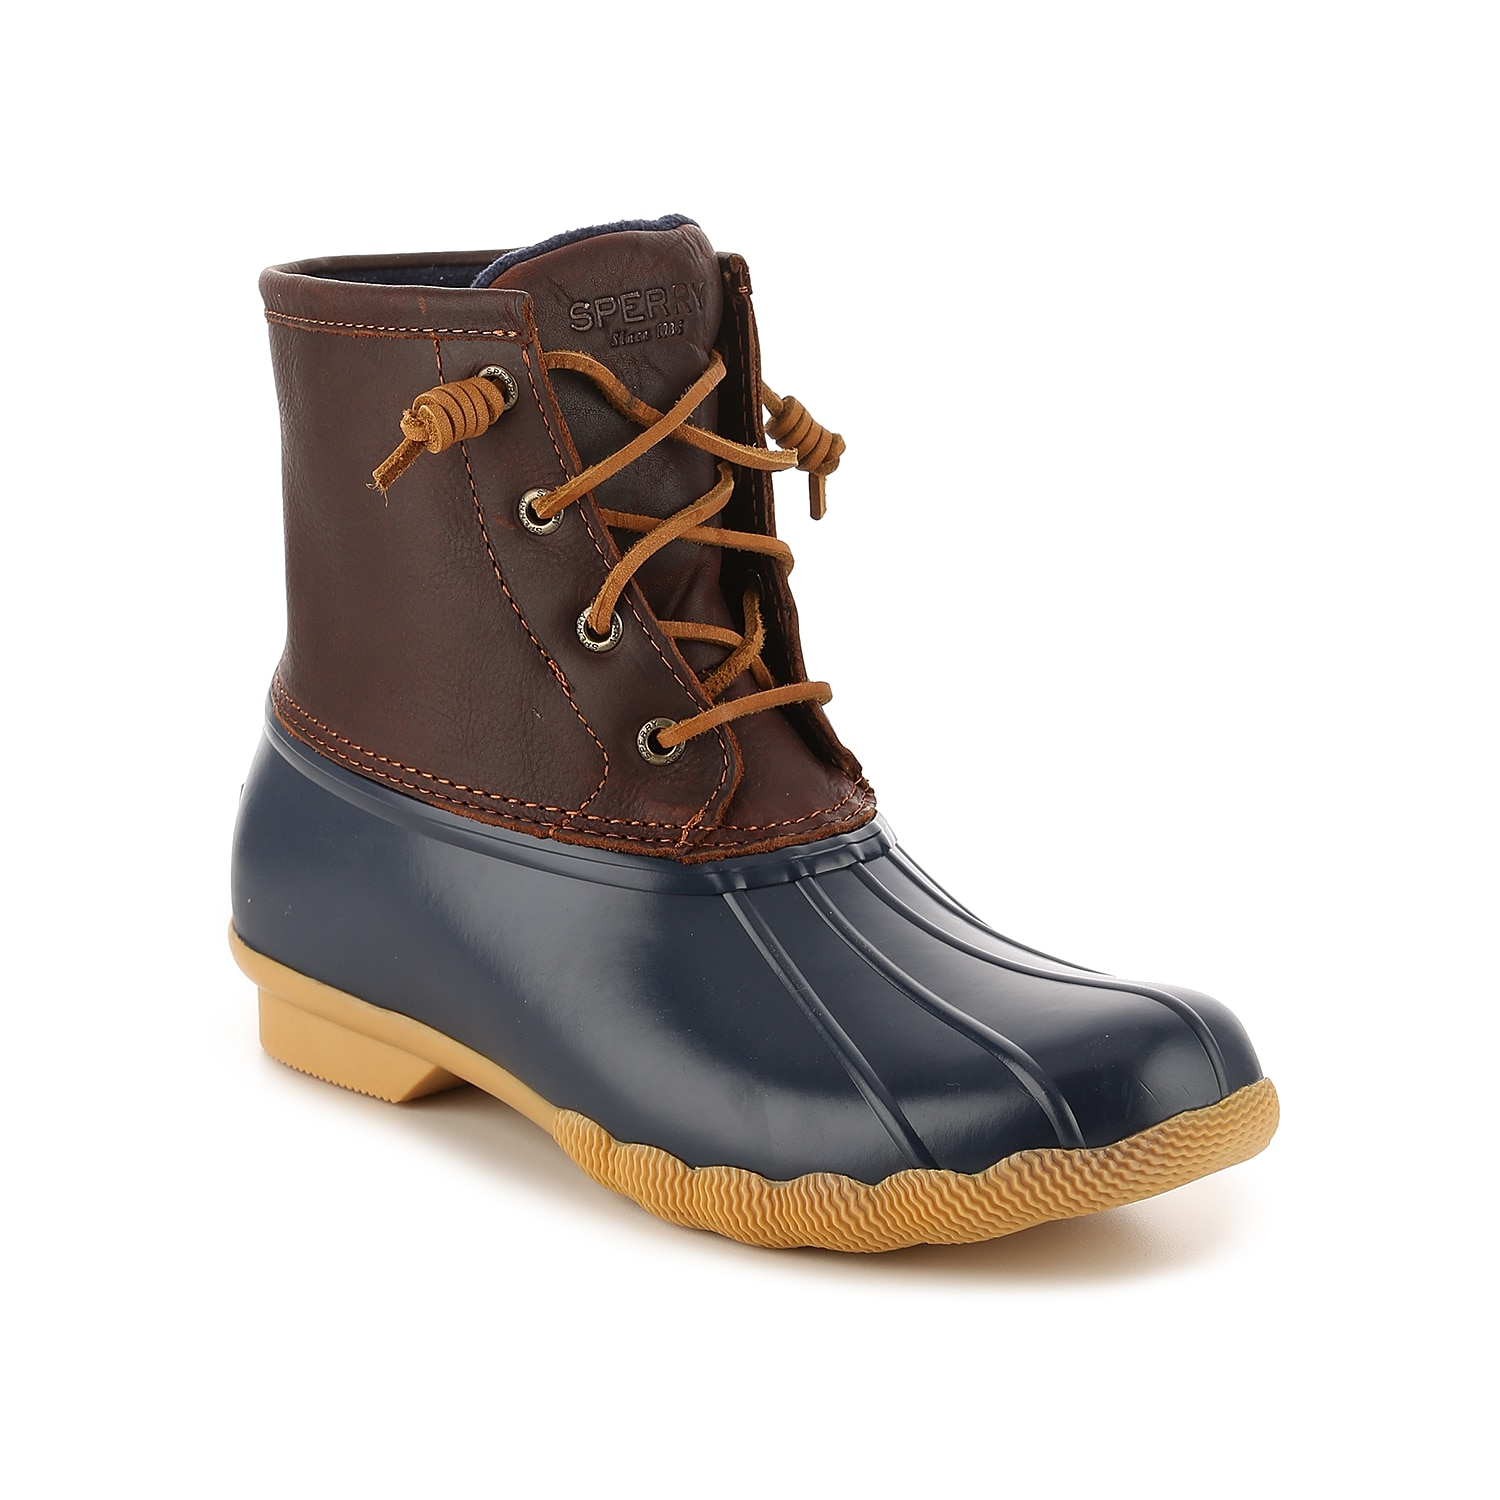 Zip up in these waterproof winter boots from Sperry to complete your cold weather look! With a trendy duck boot design, the Saltwater snow boots will keep you cute and cozy all season long!Click here for Boot Measuring Guide.